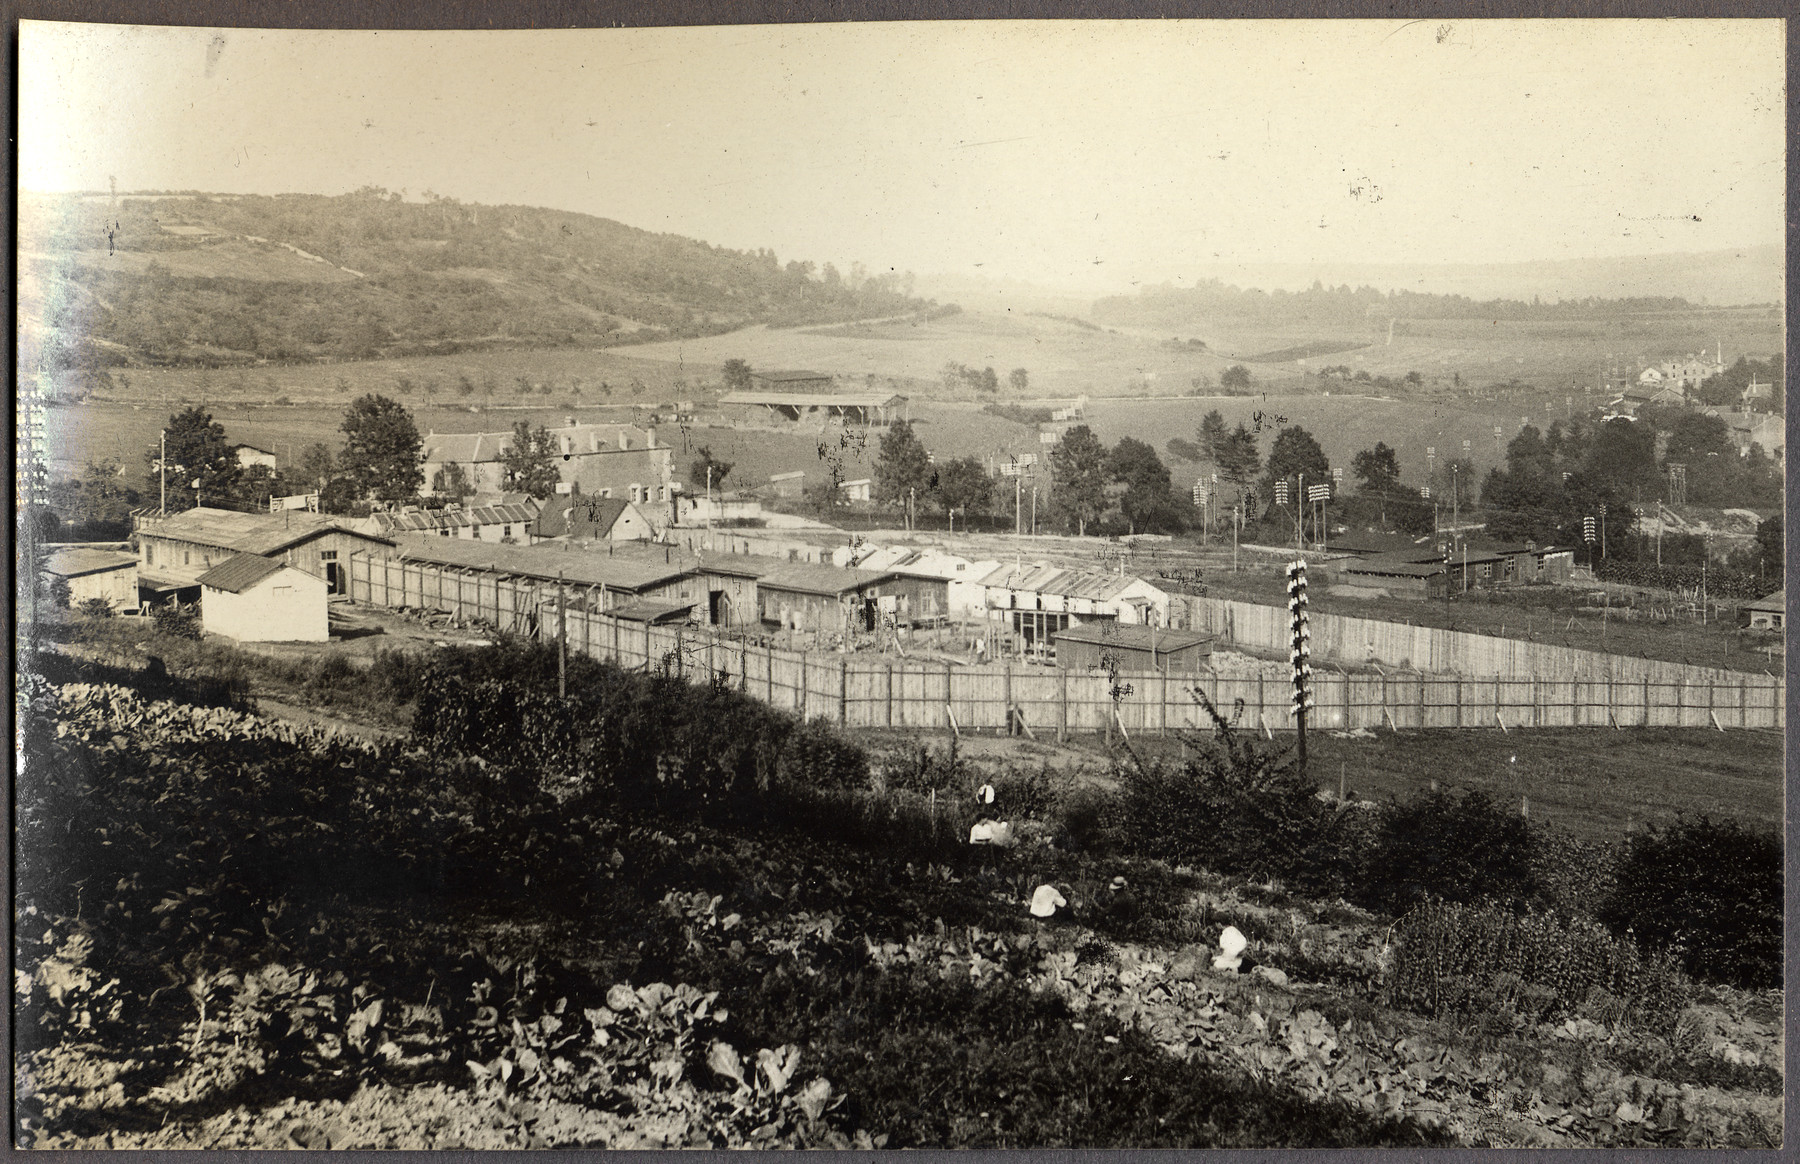 View of the POW camp at Montmedy, France where Walter Landé served as a German medical officer.